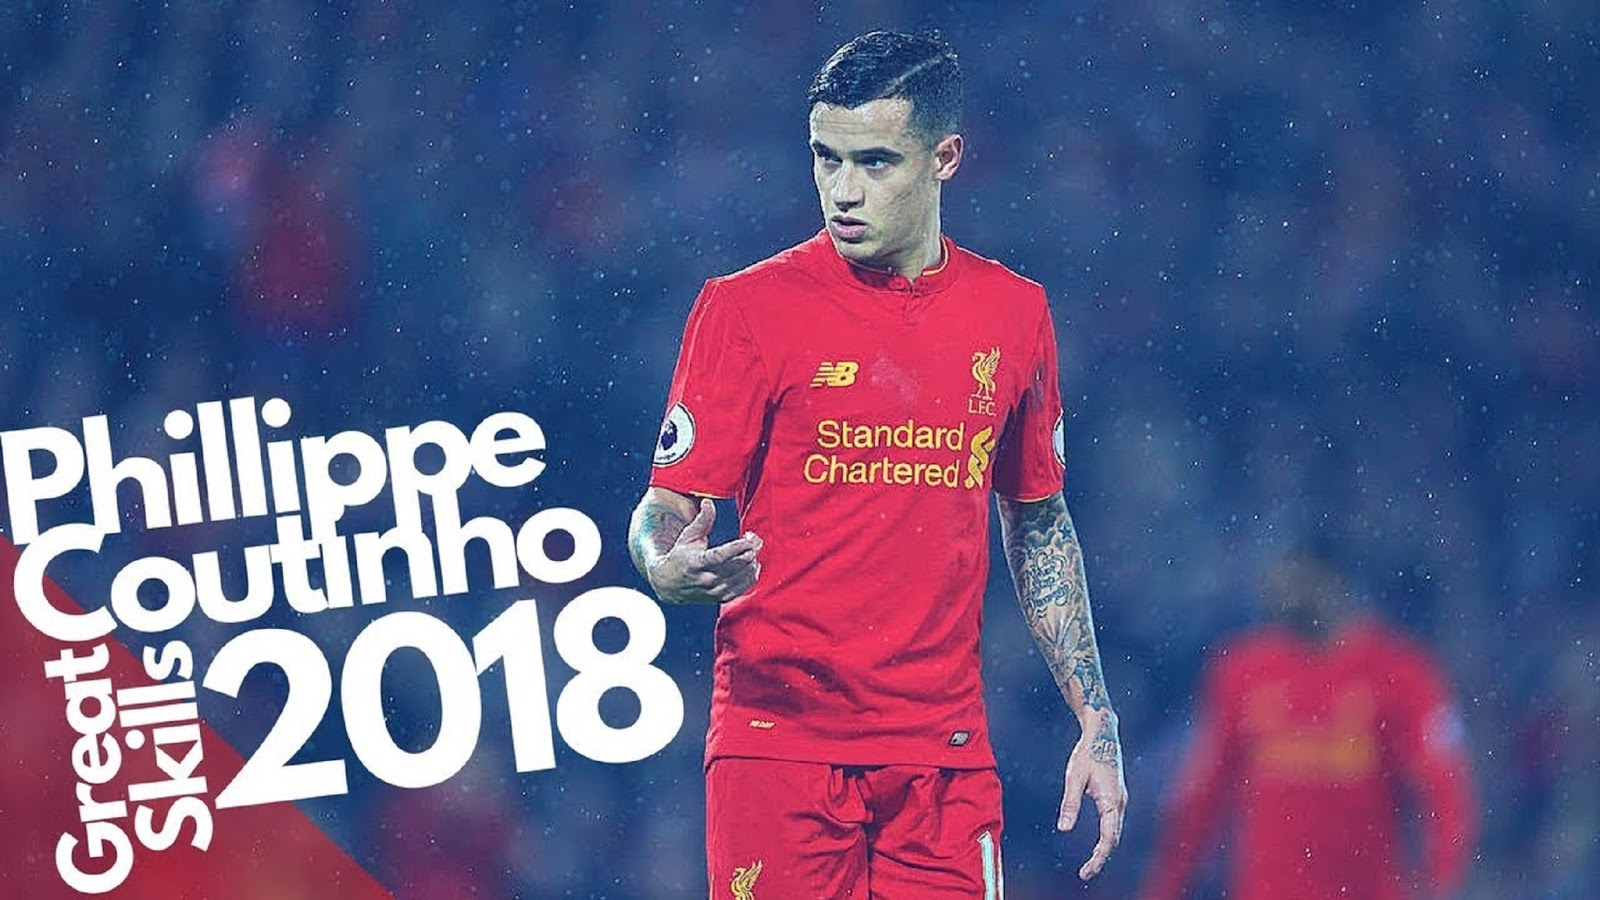 PHILIPPE COUTINHO 10